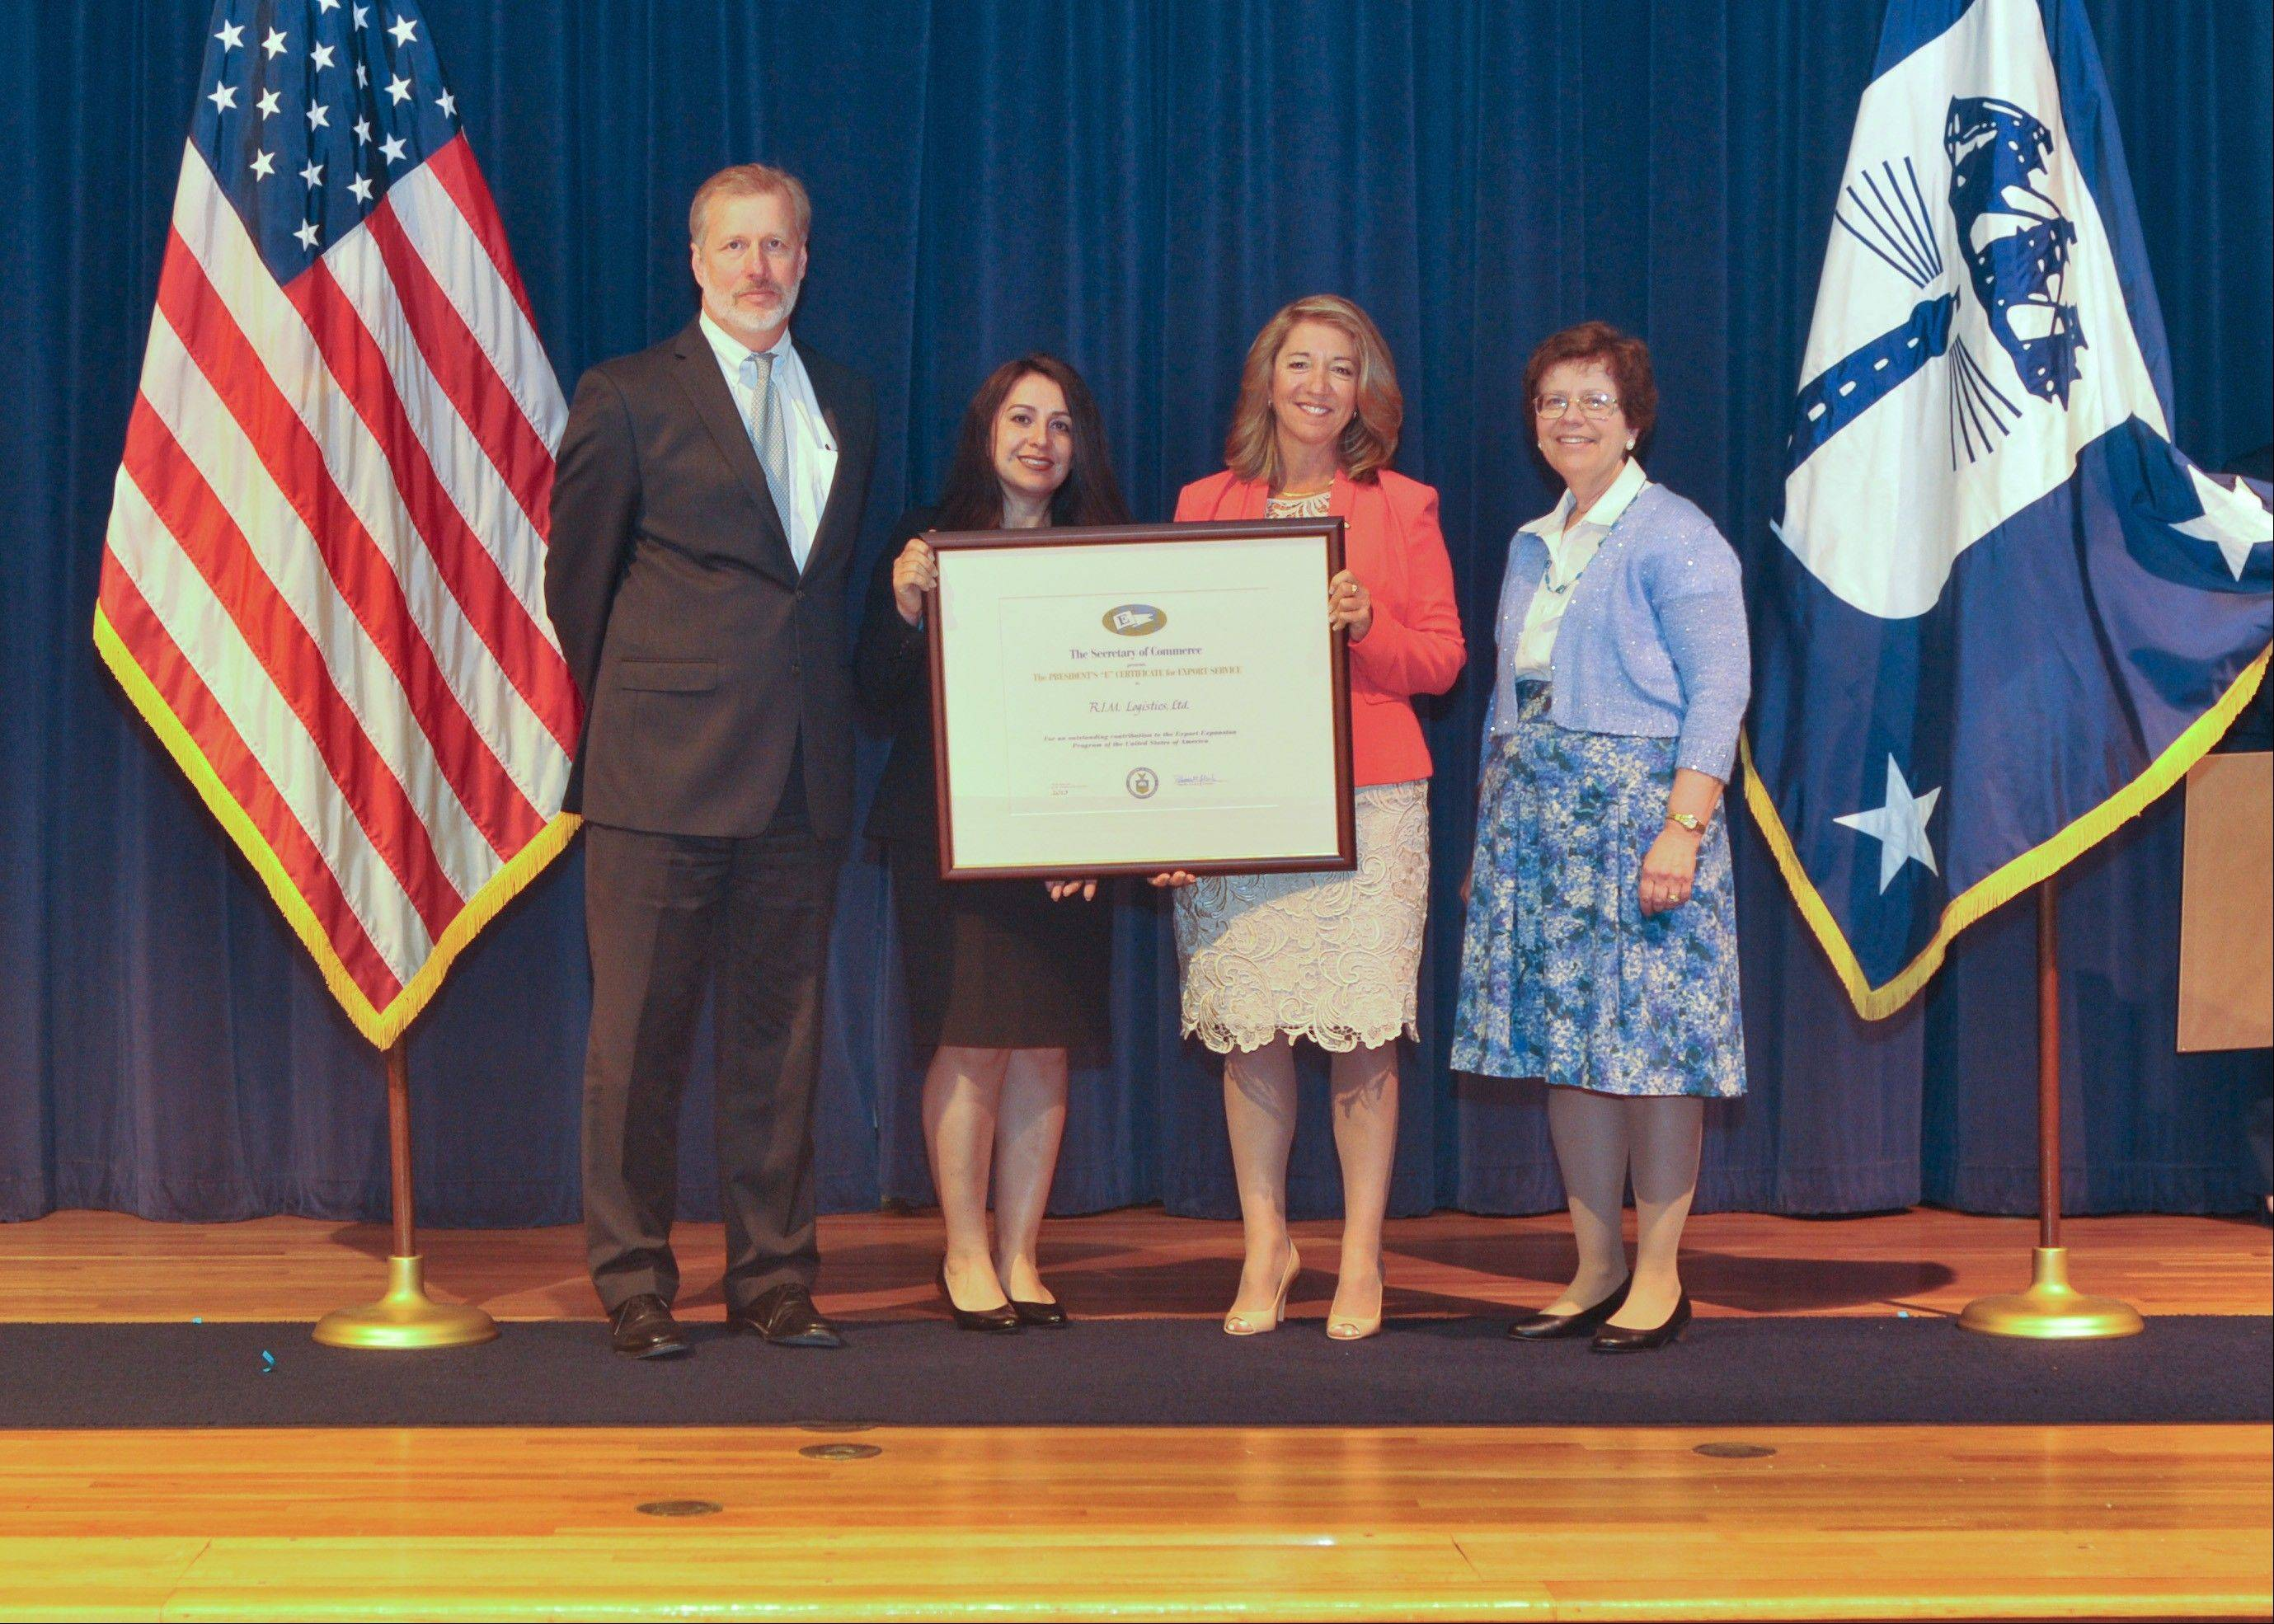 U.S. Acting Deputy Under Secretary for International Trade Kenneth E. Hyatt, from left, Matilda Vazquez, RIM Logistics export compliance manager; Sheila Serafin, RIM Logistics vice president of global accounts; and U.S. Acting Secretary of Commerce Rebecca Blank.